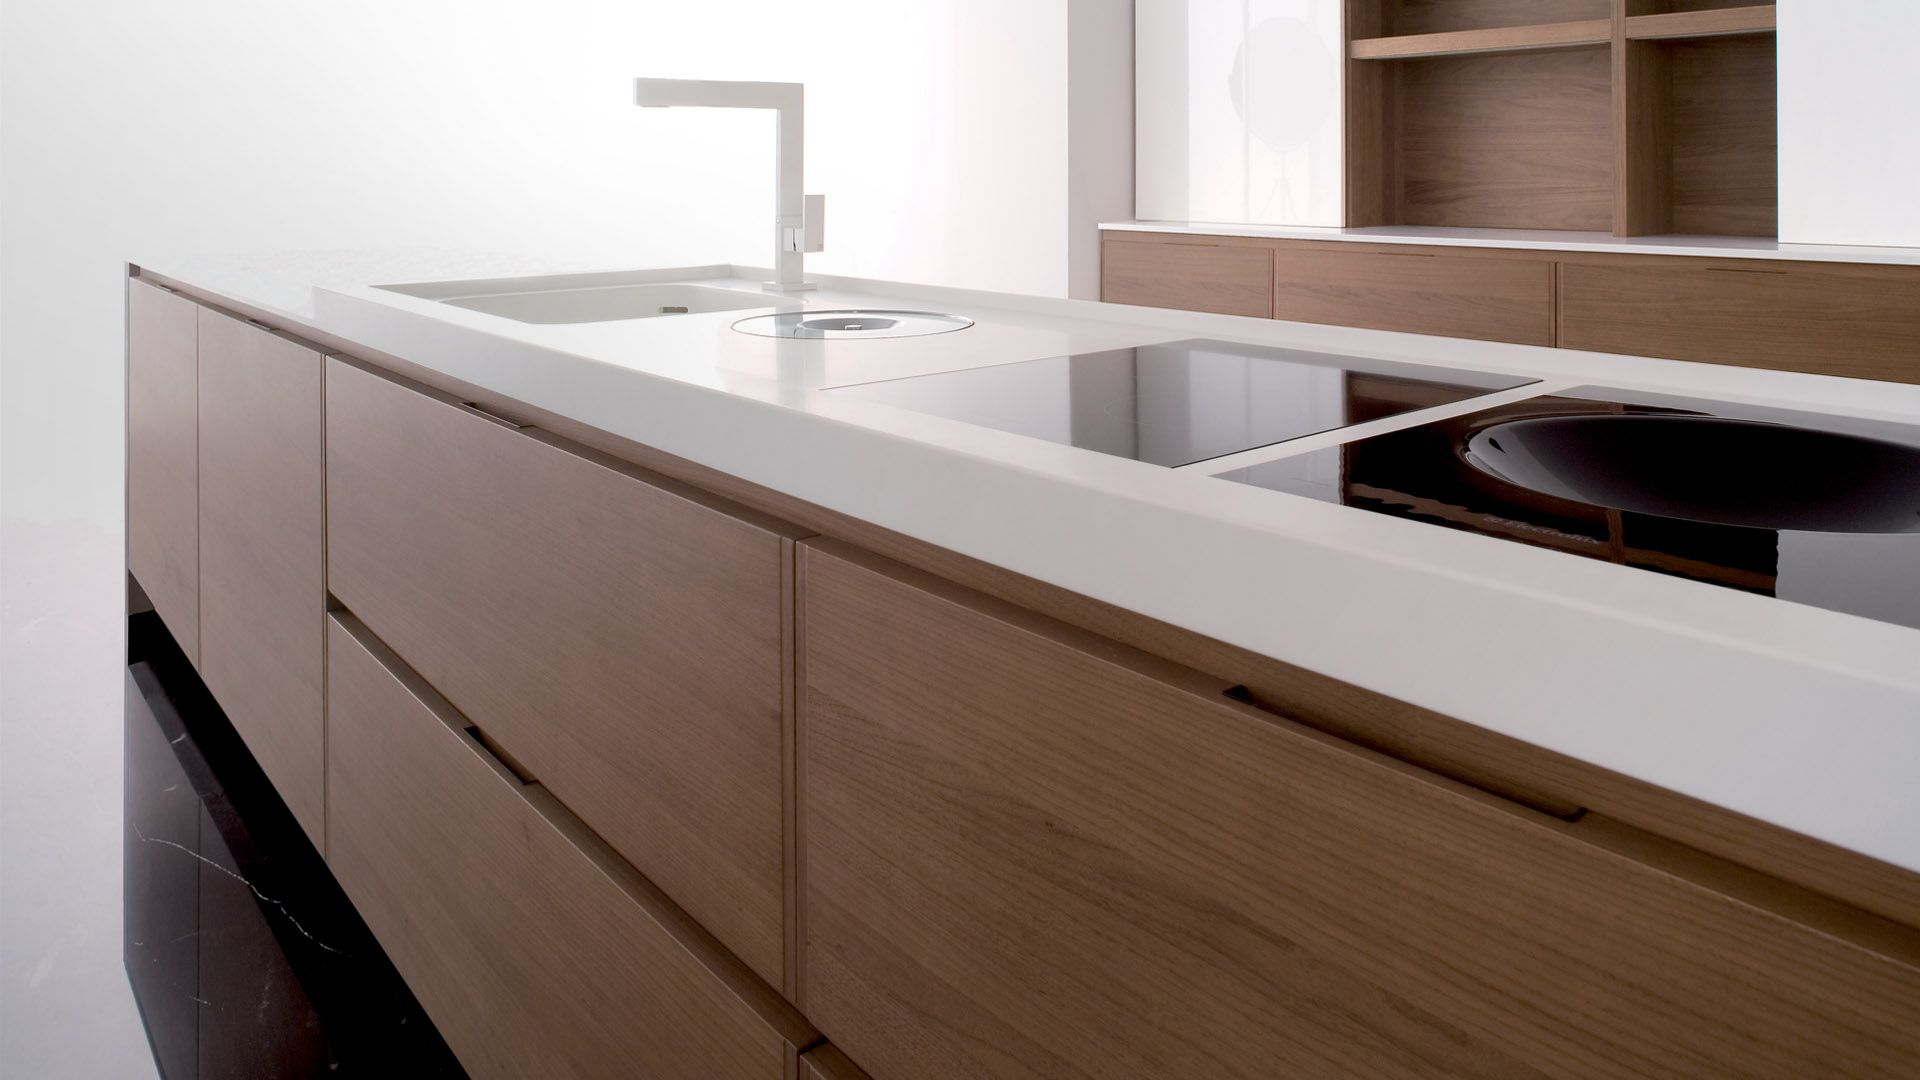 Designing A Kitchen Online Fancy Luxurious Kitchen Design With Glacier White Corian